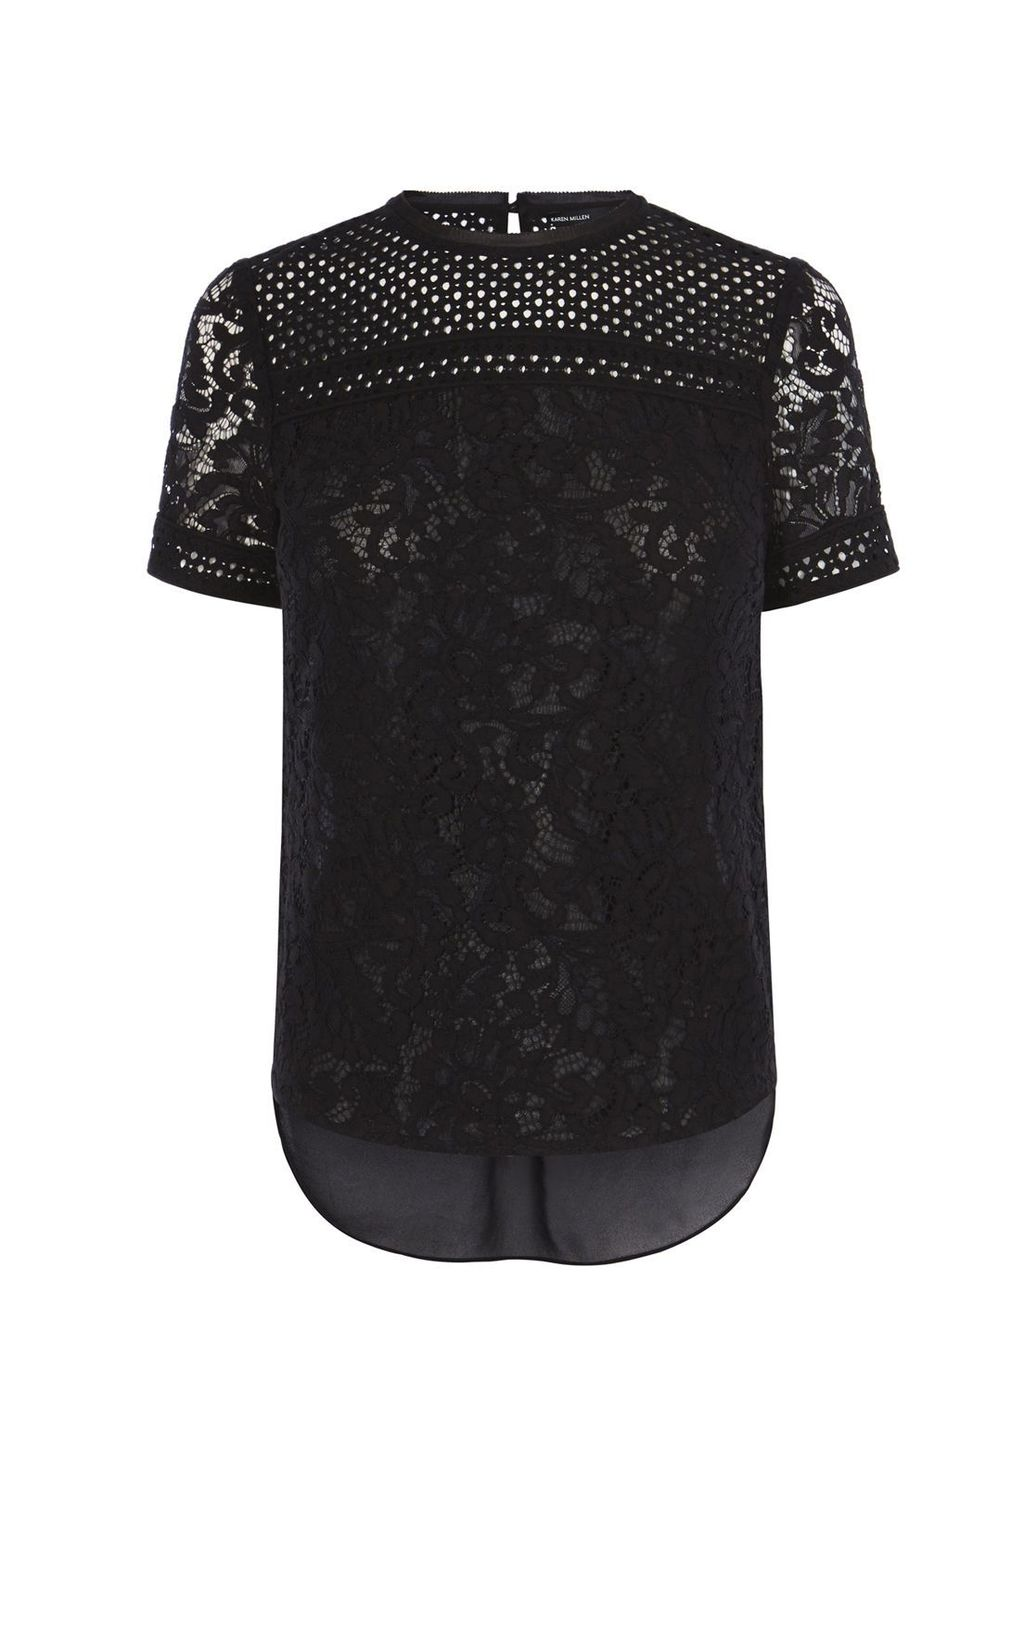 Lace Panel T Shirt, Black - style: t-shirt; predominant colour: black; occasions: evening; length: standard; fibres: polyester/polyamide - mix; fit: body skimming; neckline: crew; sleeve length: short sleeve; sleeve style: standard; texture group: lace; pattern type: fabric; pattern size: standard; pattern: patterned/print; season: s/s 2016